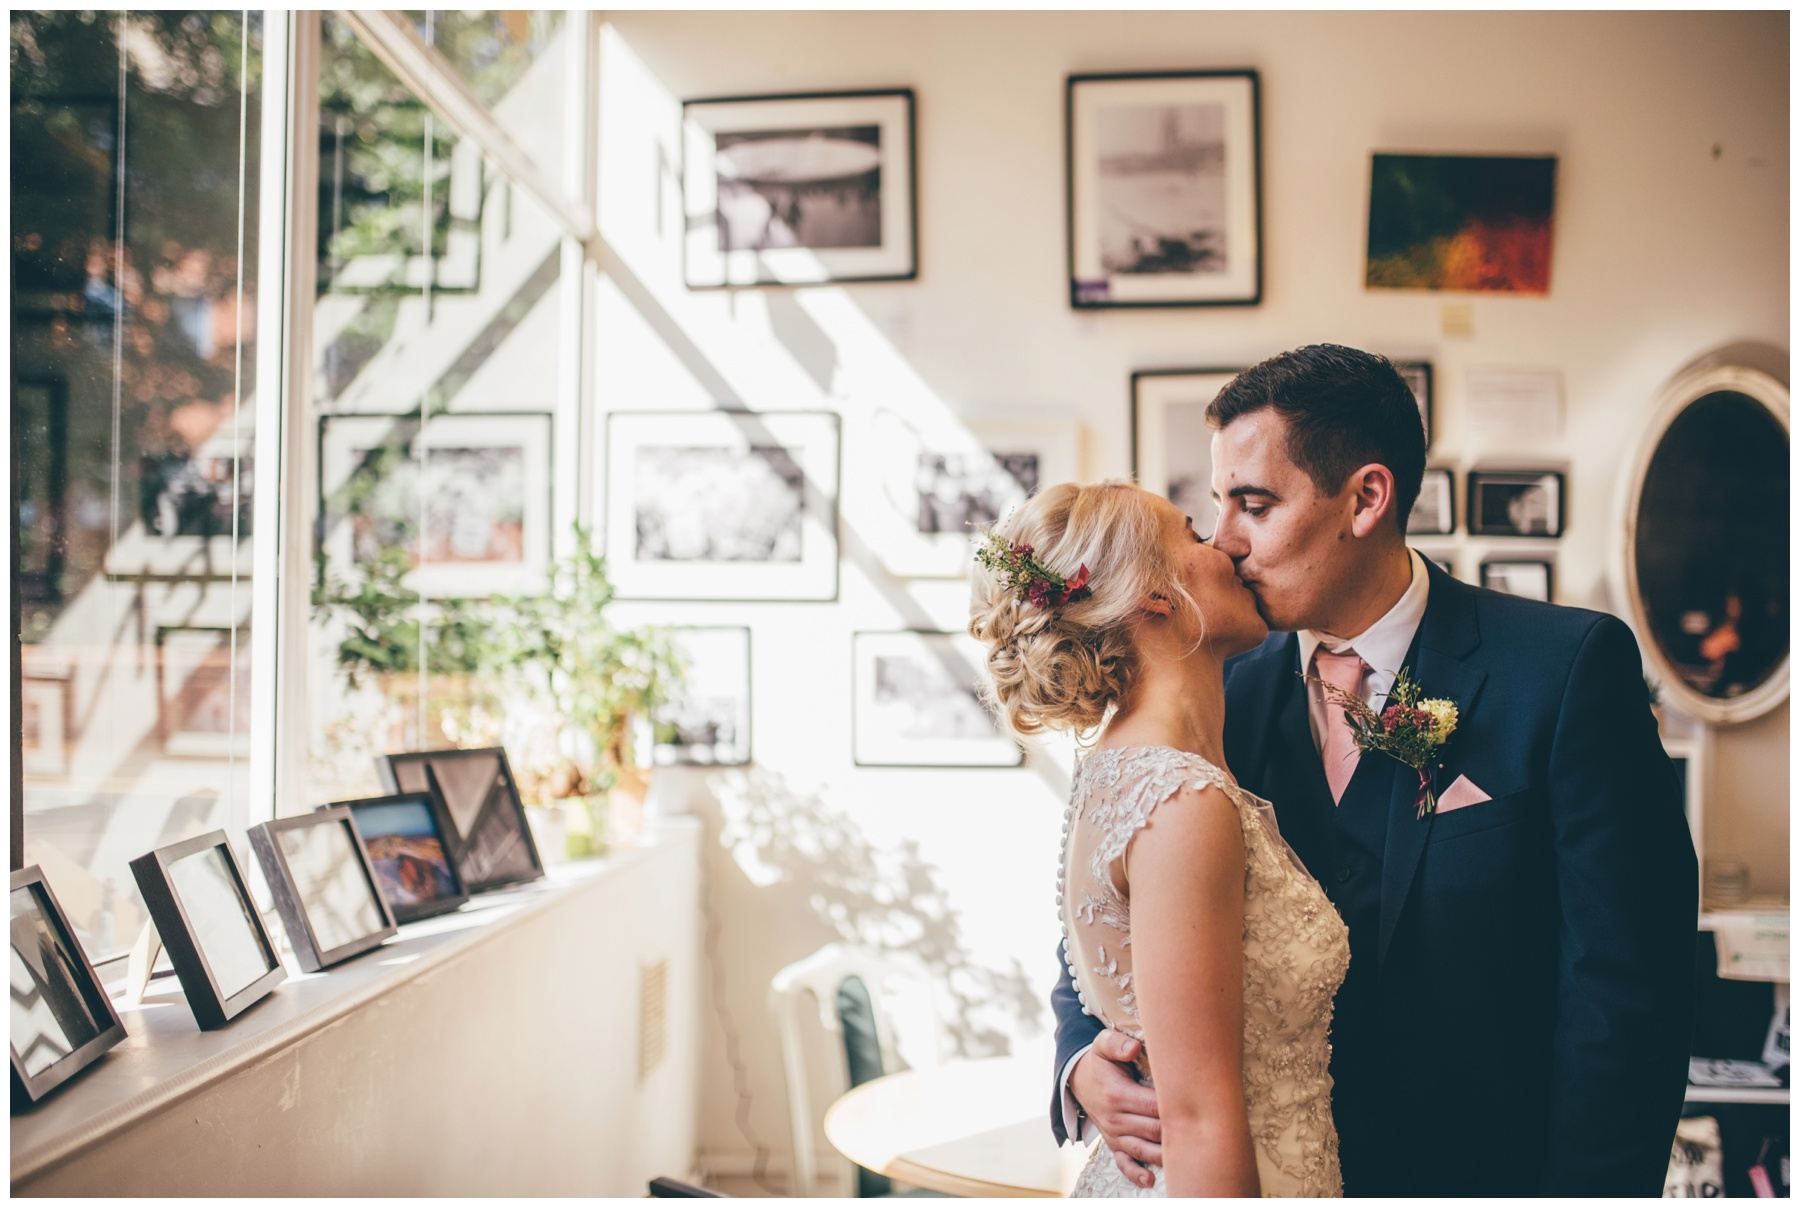 Bride and groom share a kiss in the art gallery of The Hide in Sheffield city centre wedding.